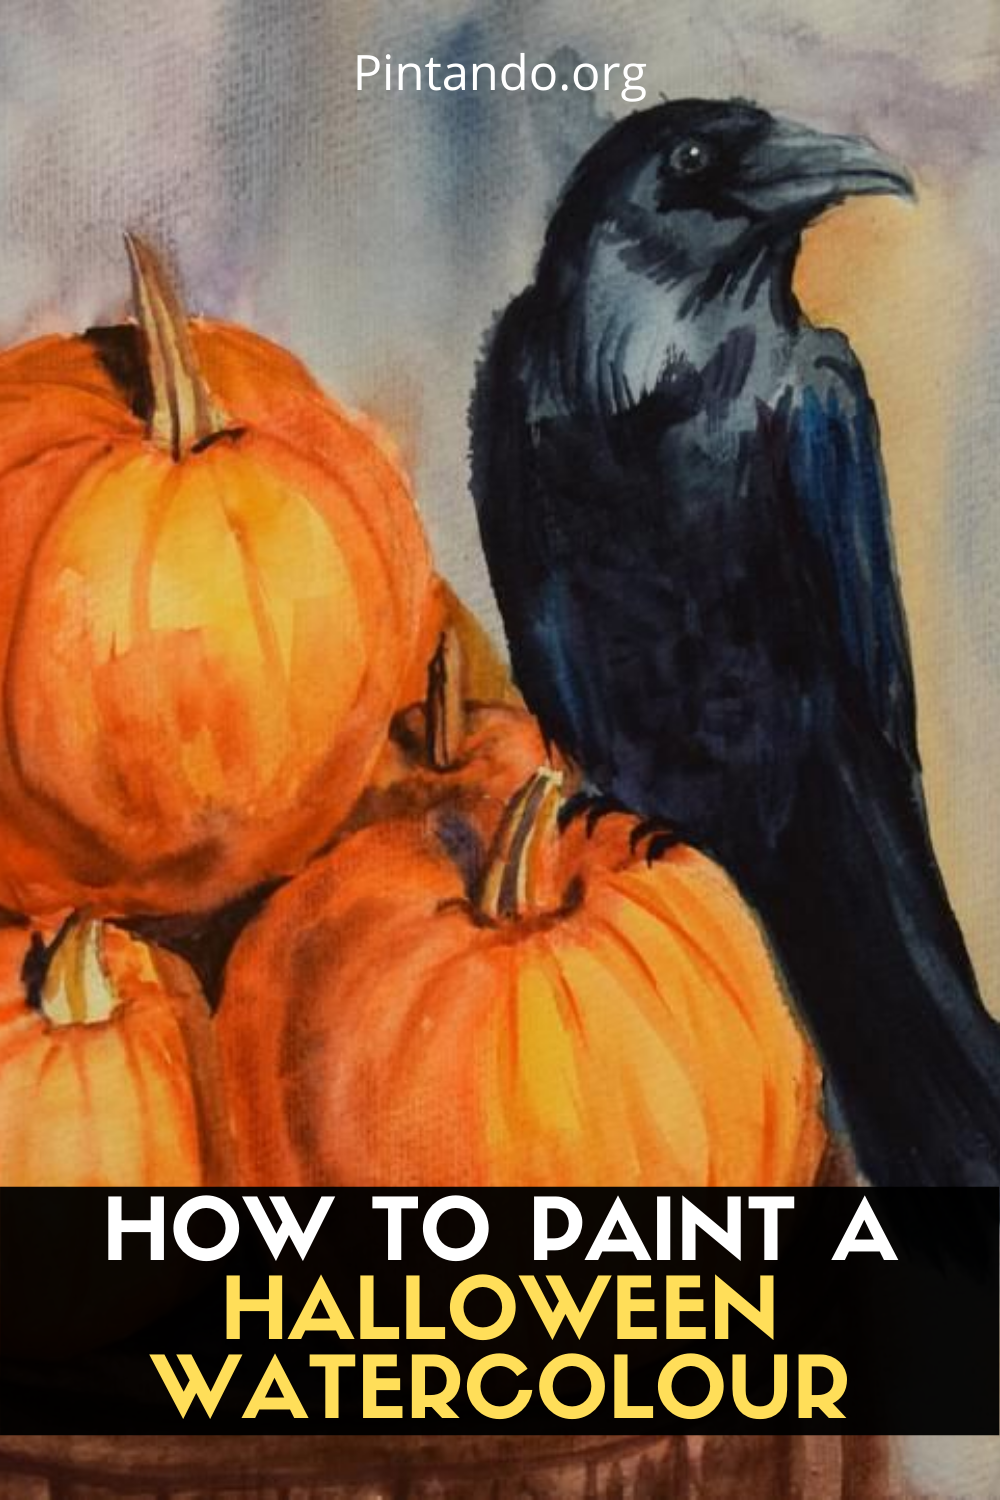 HOW TO PAINT A HALLOWEEN WATERCOLOUR (1)